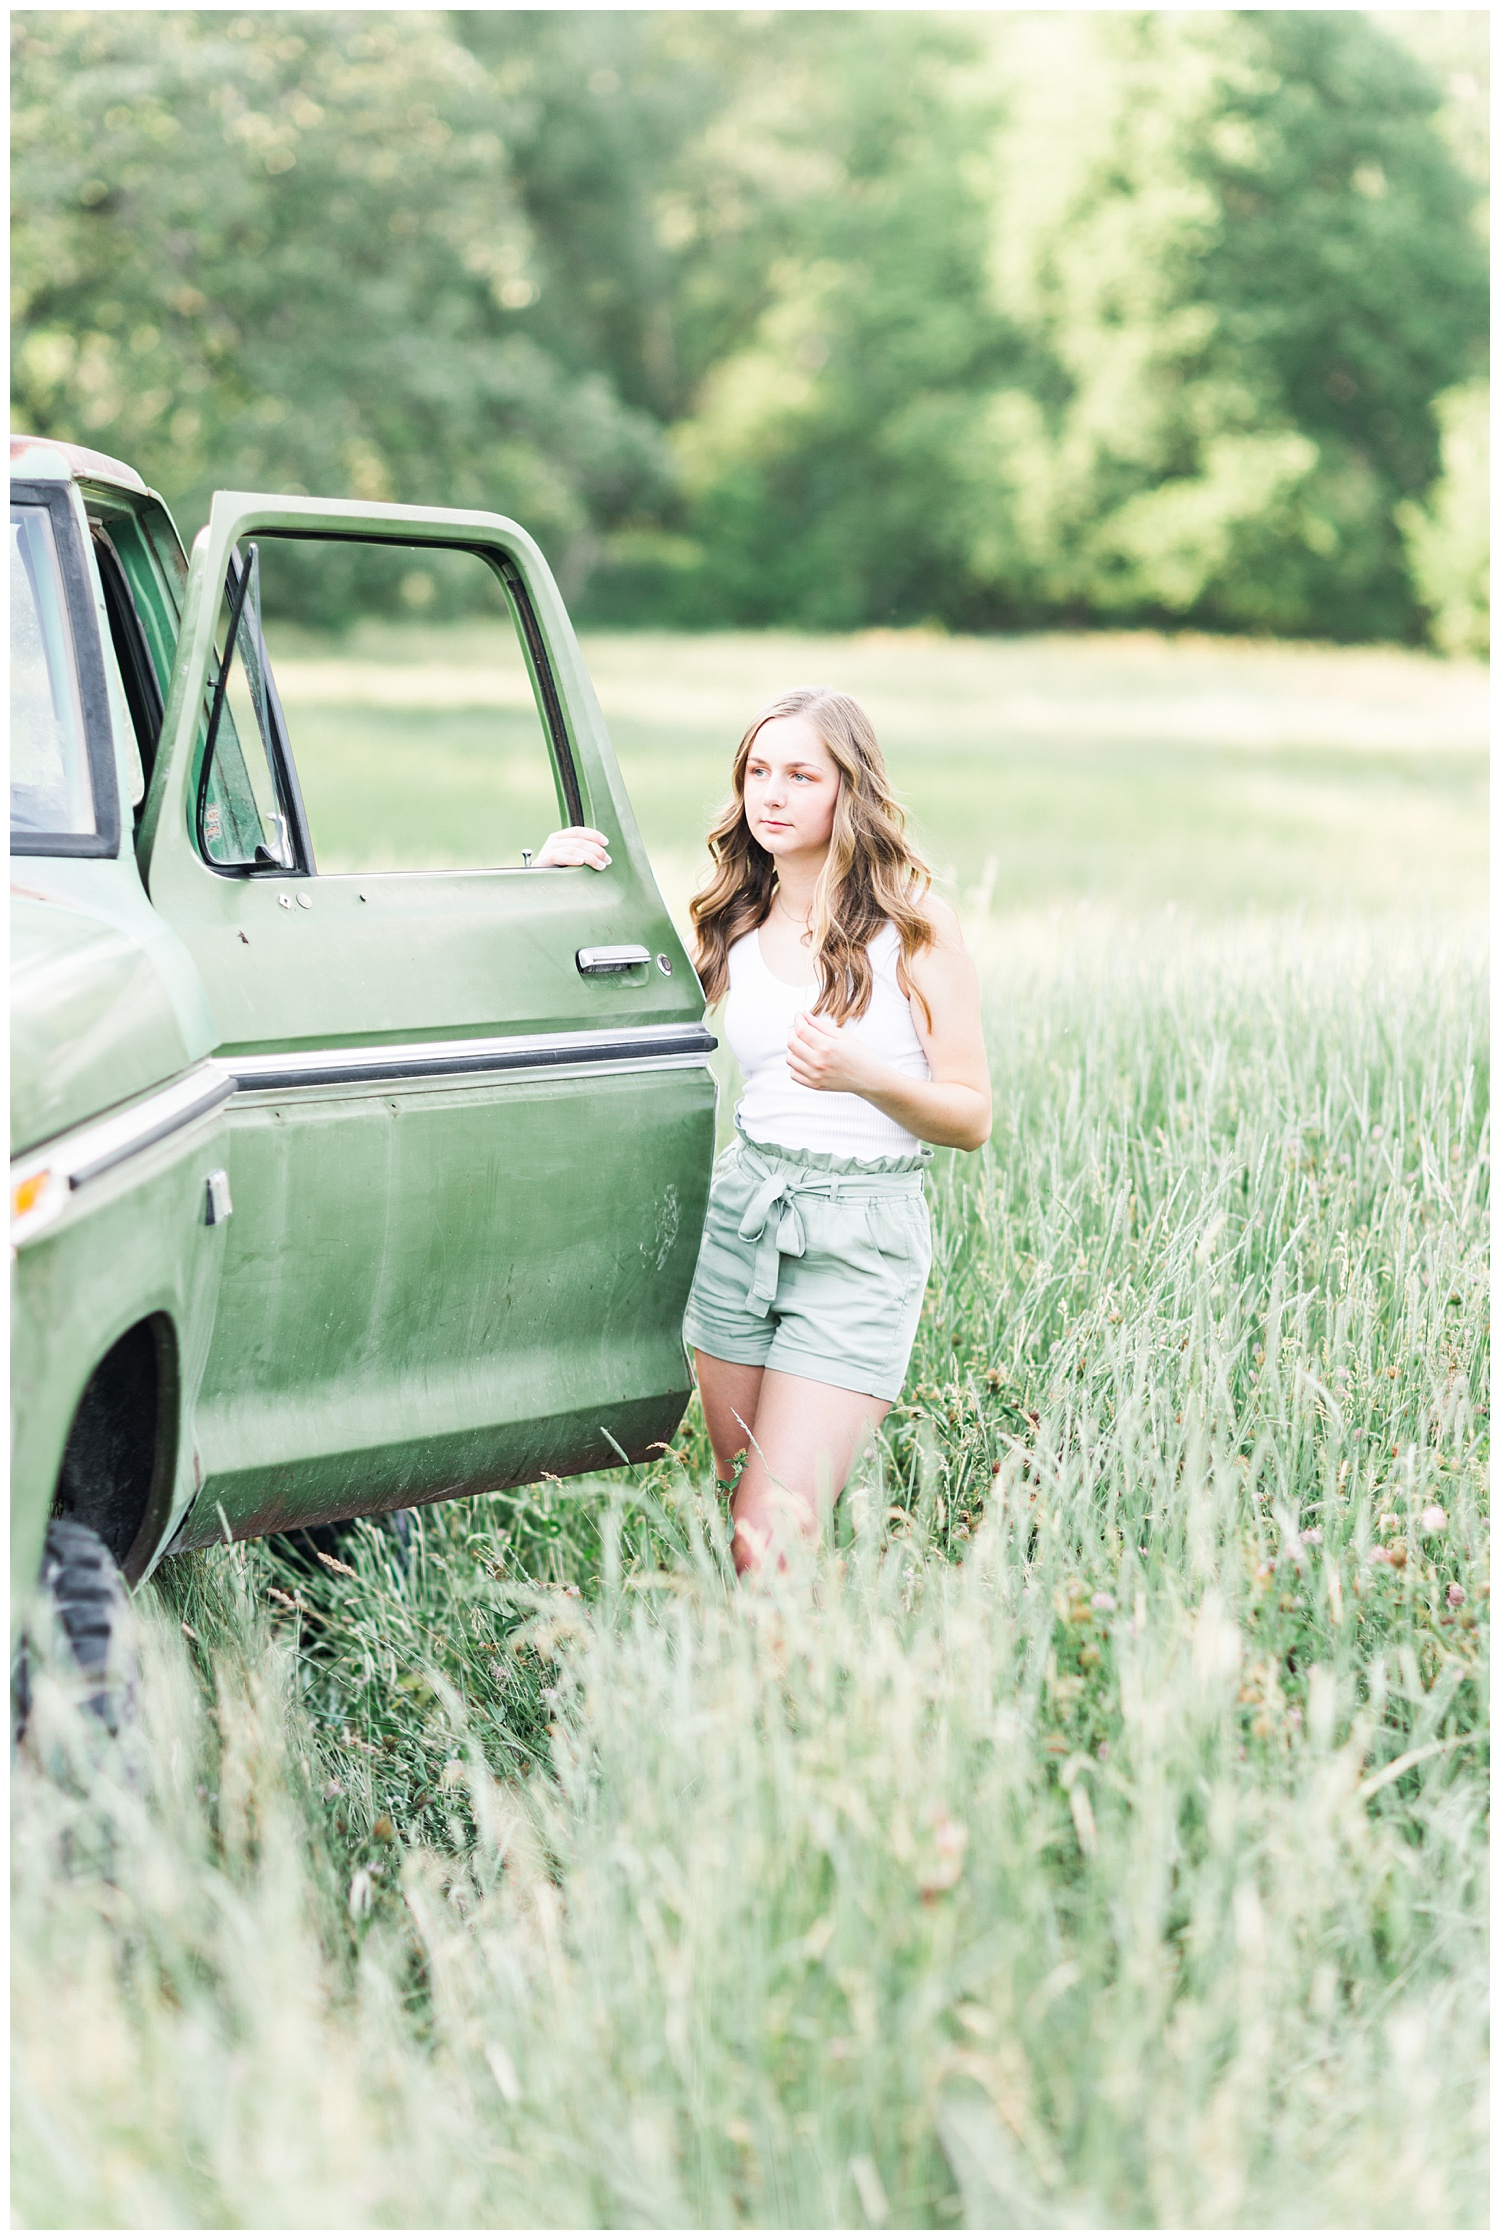 Senior Taylor standing next to an old green Ford truck in a grassy field | CB Studio